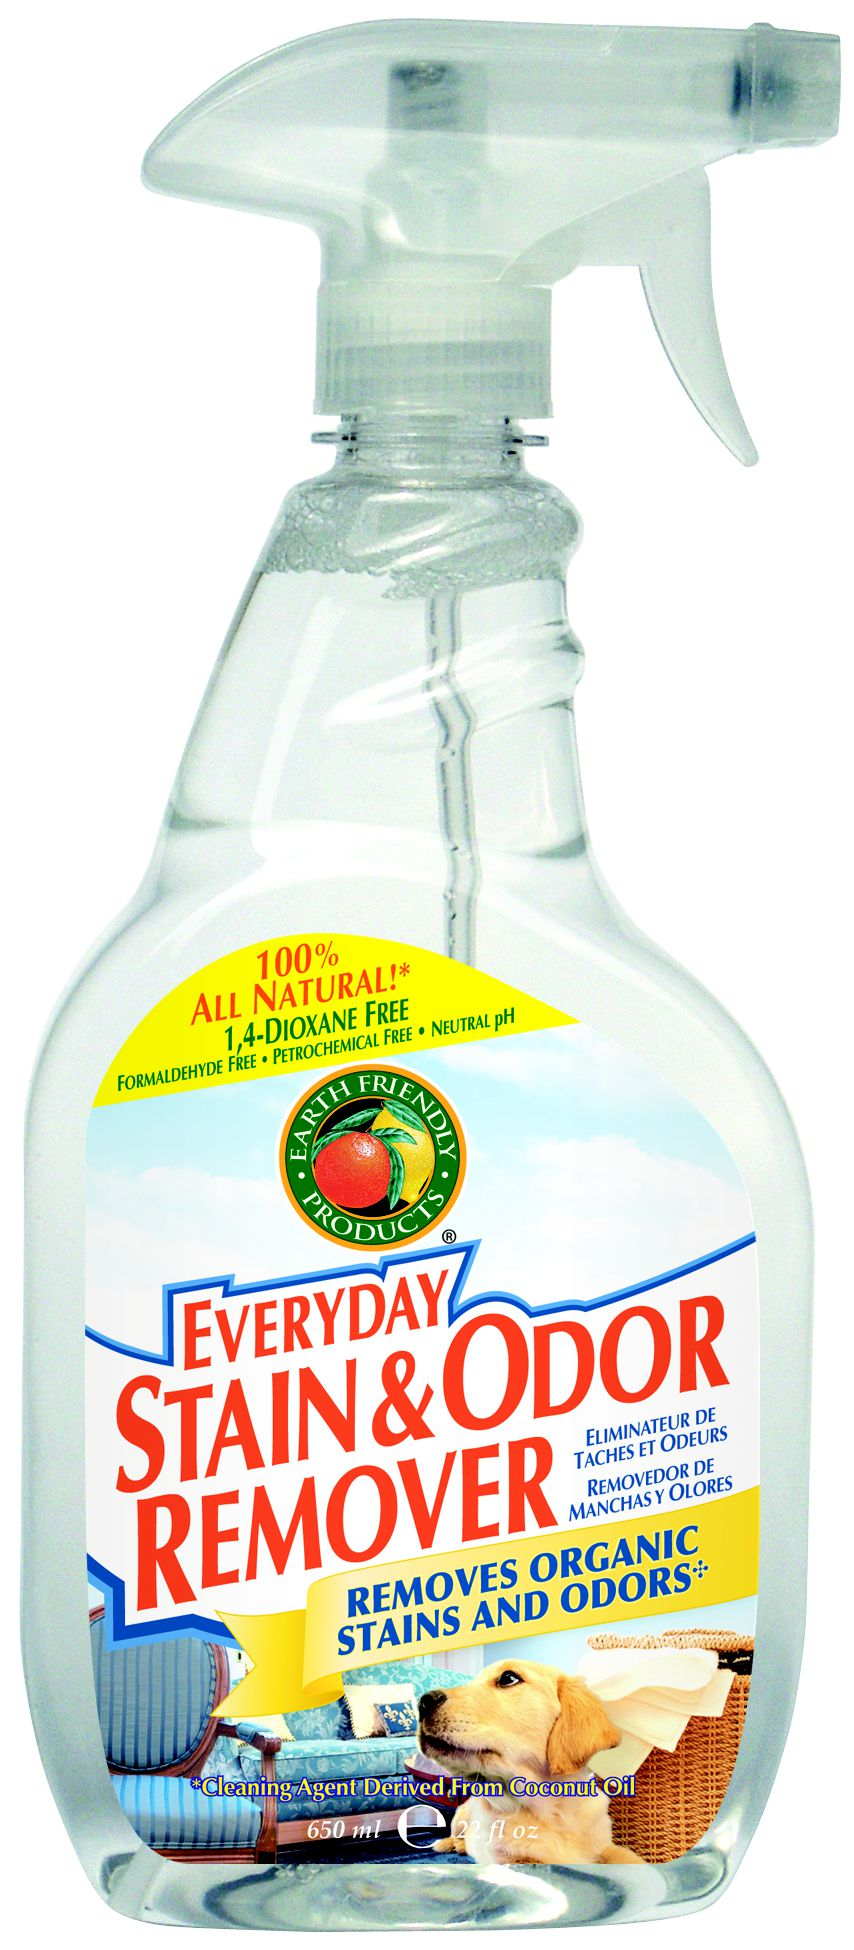 Earth Friendly Products Everyday Stain & Odor Remover